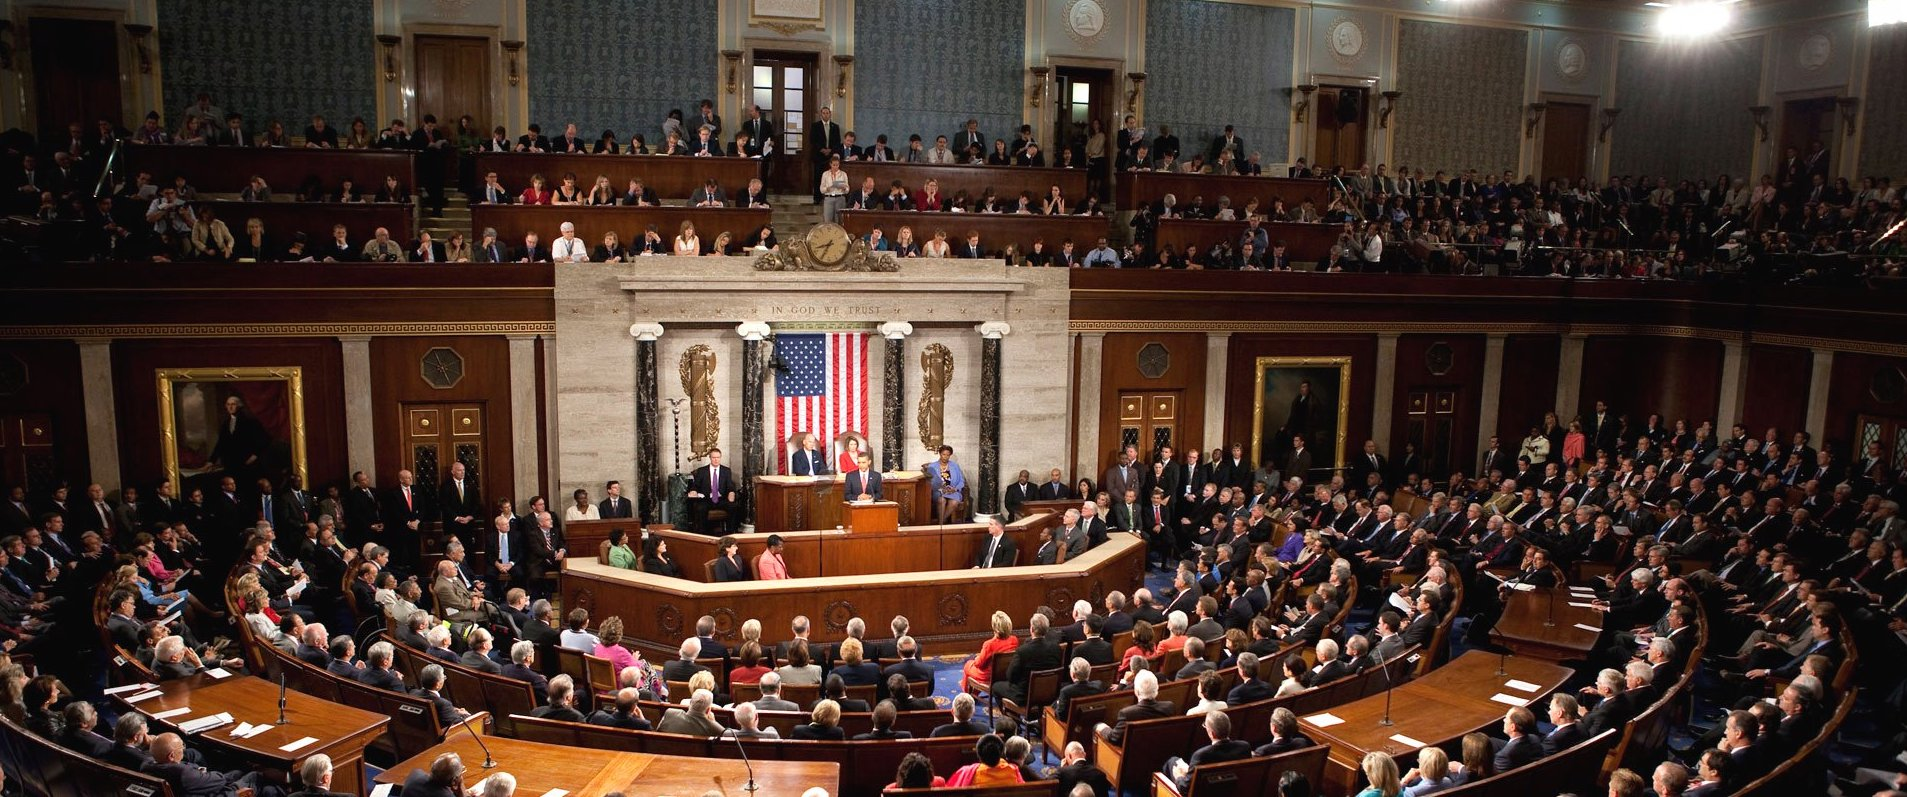 The United States Senate in session ( Image )